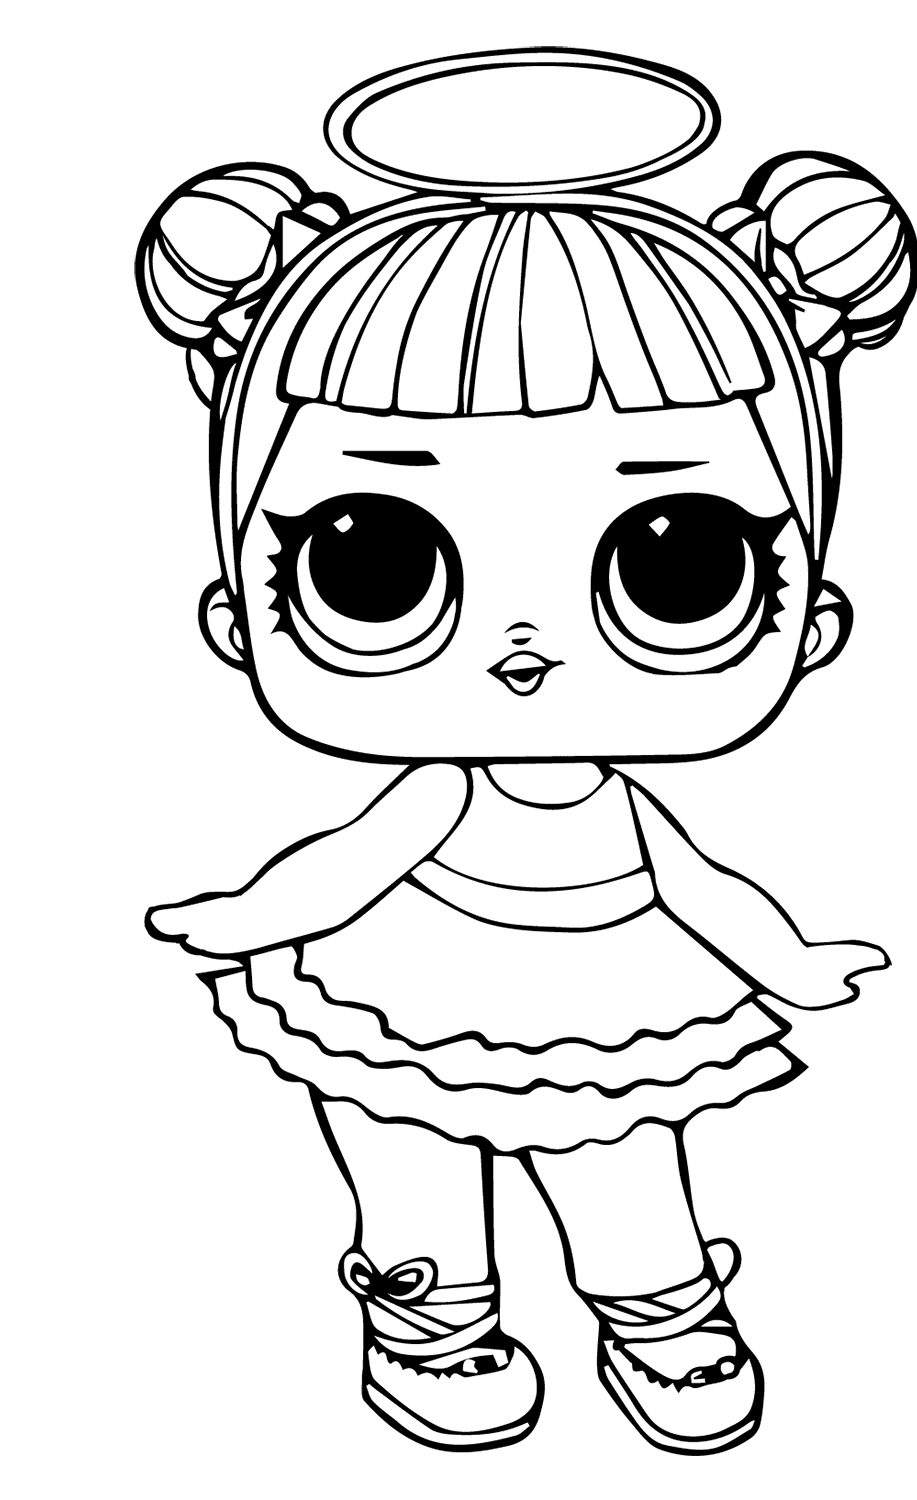 dolls colouring pages little lids siobhan lol doll colouring pages pages dolls colouring